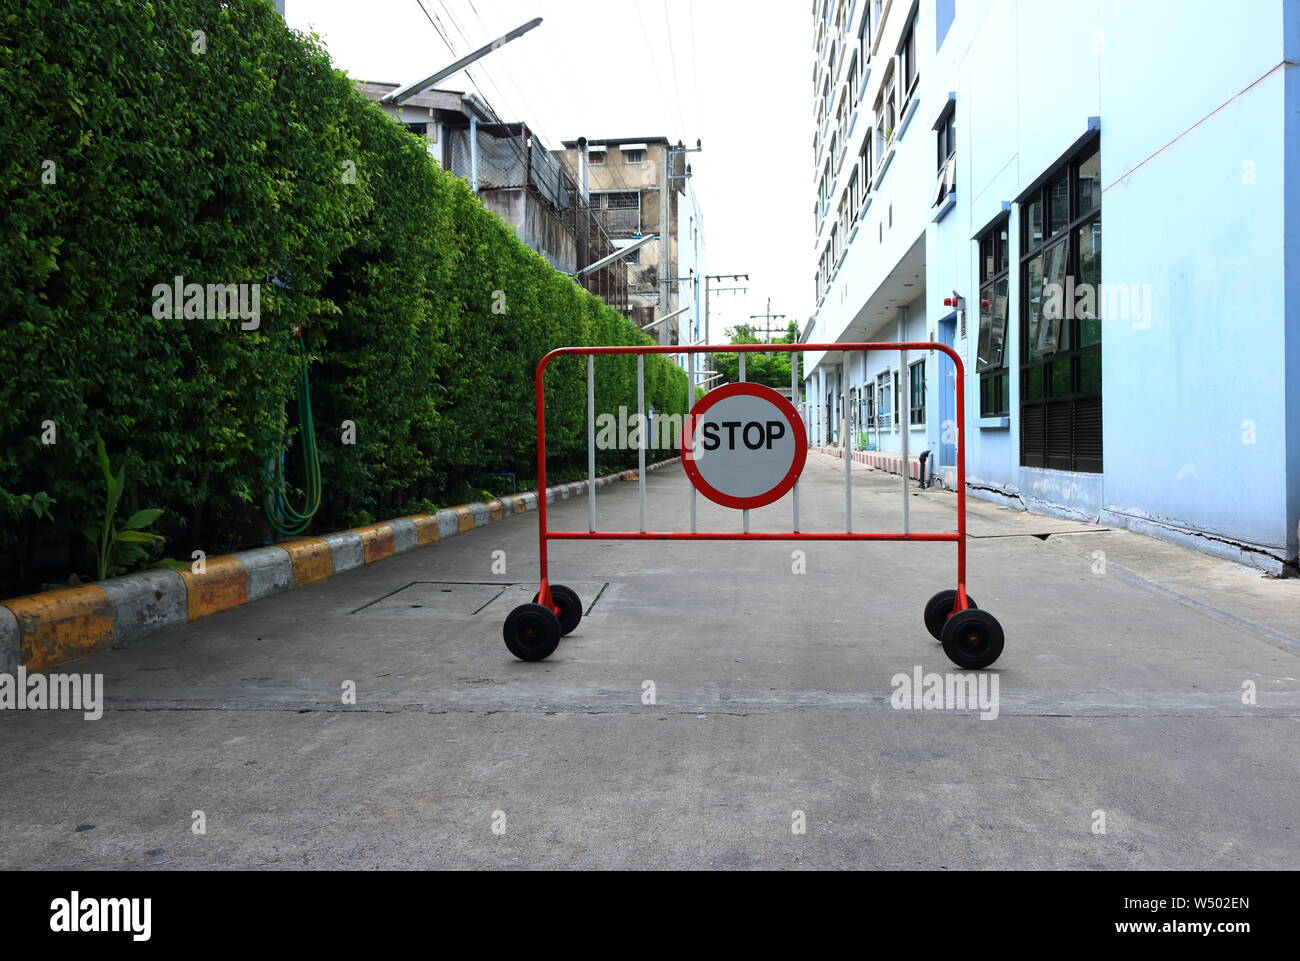 Closeup of stop sign standing on street, safety concept Stock Photo